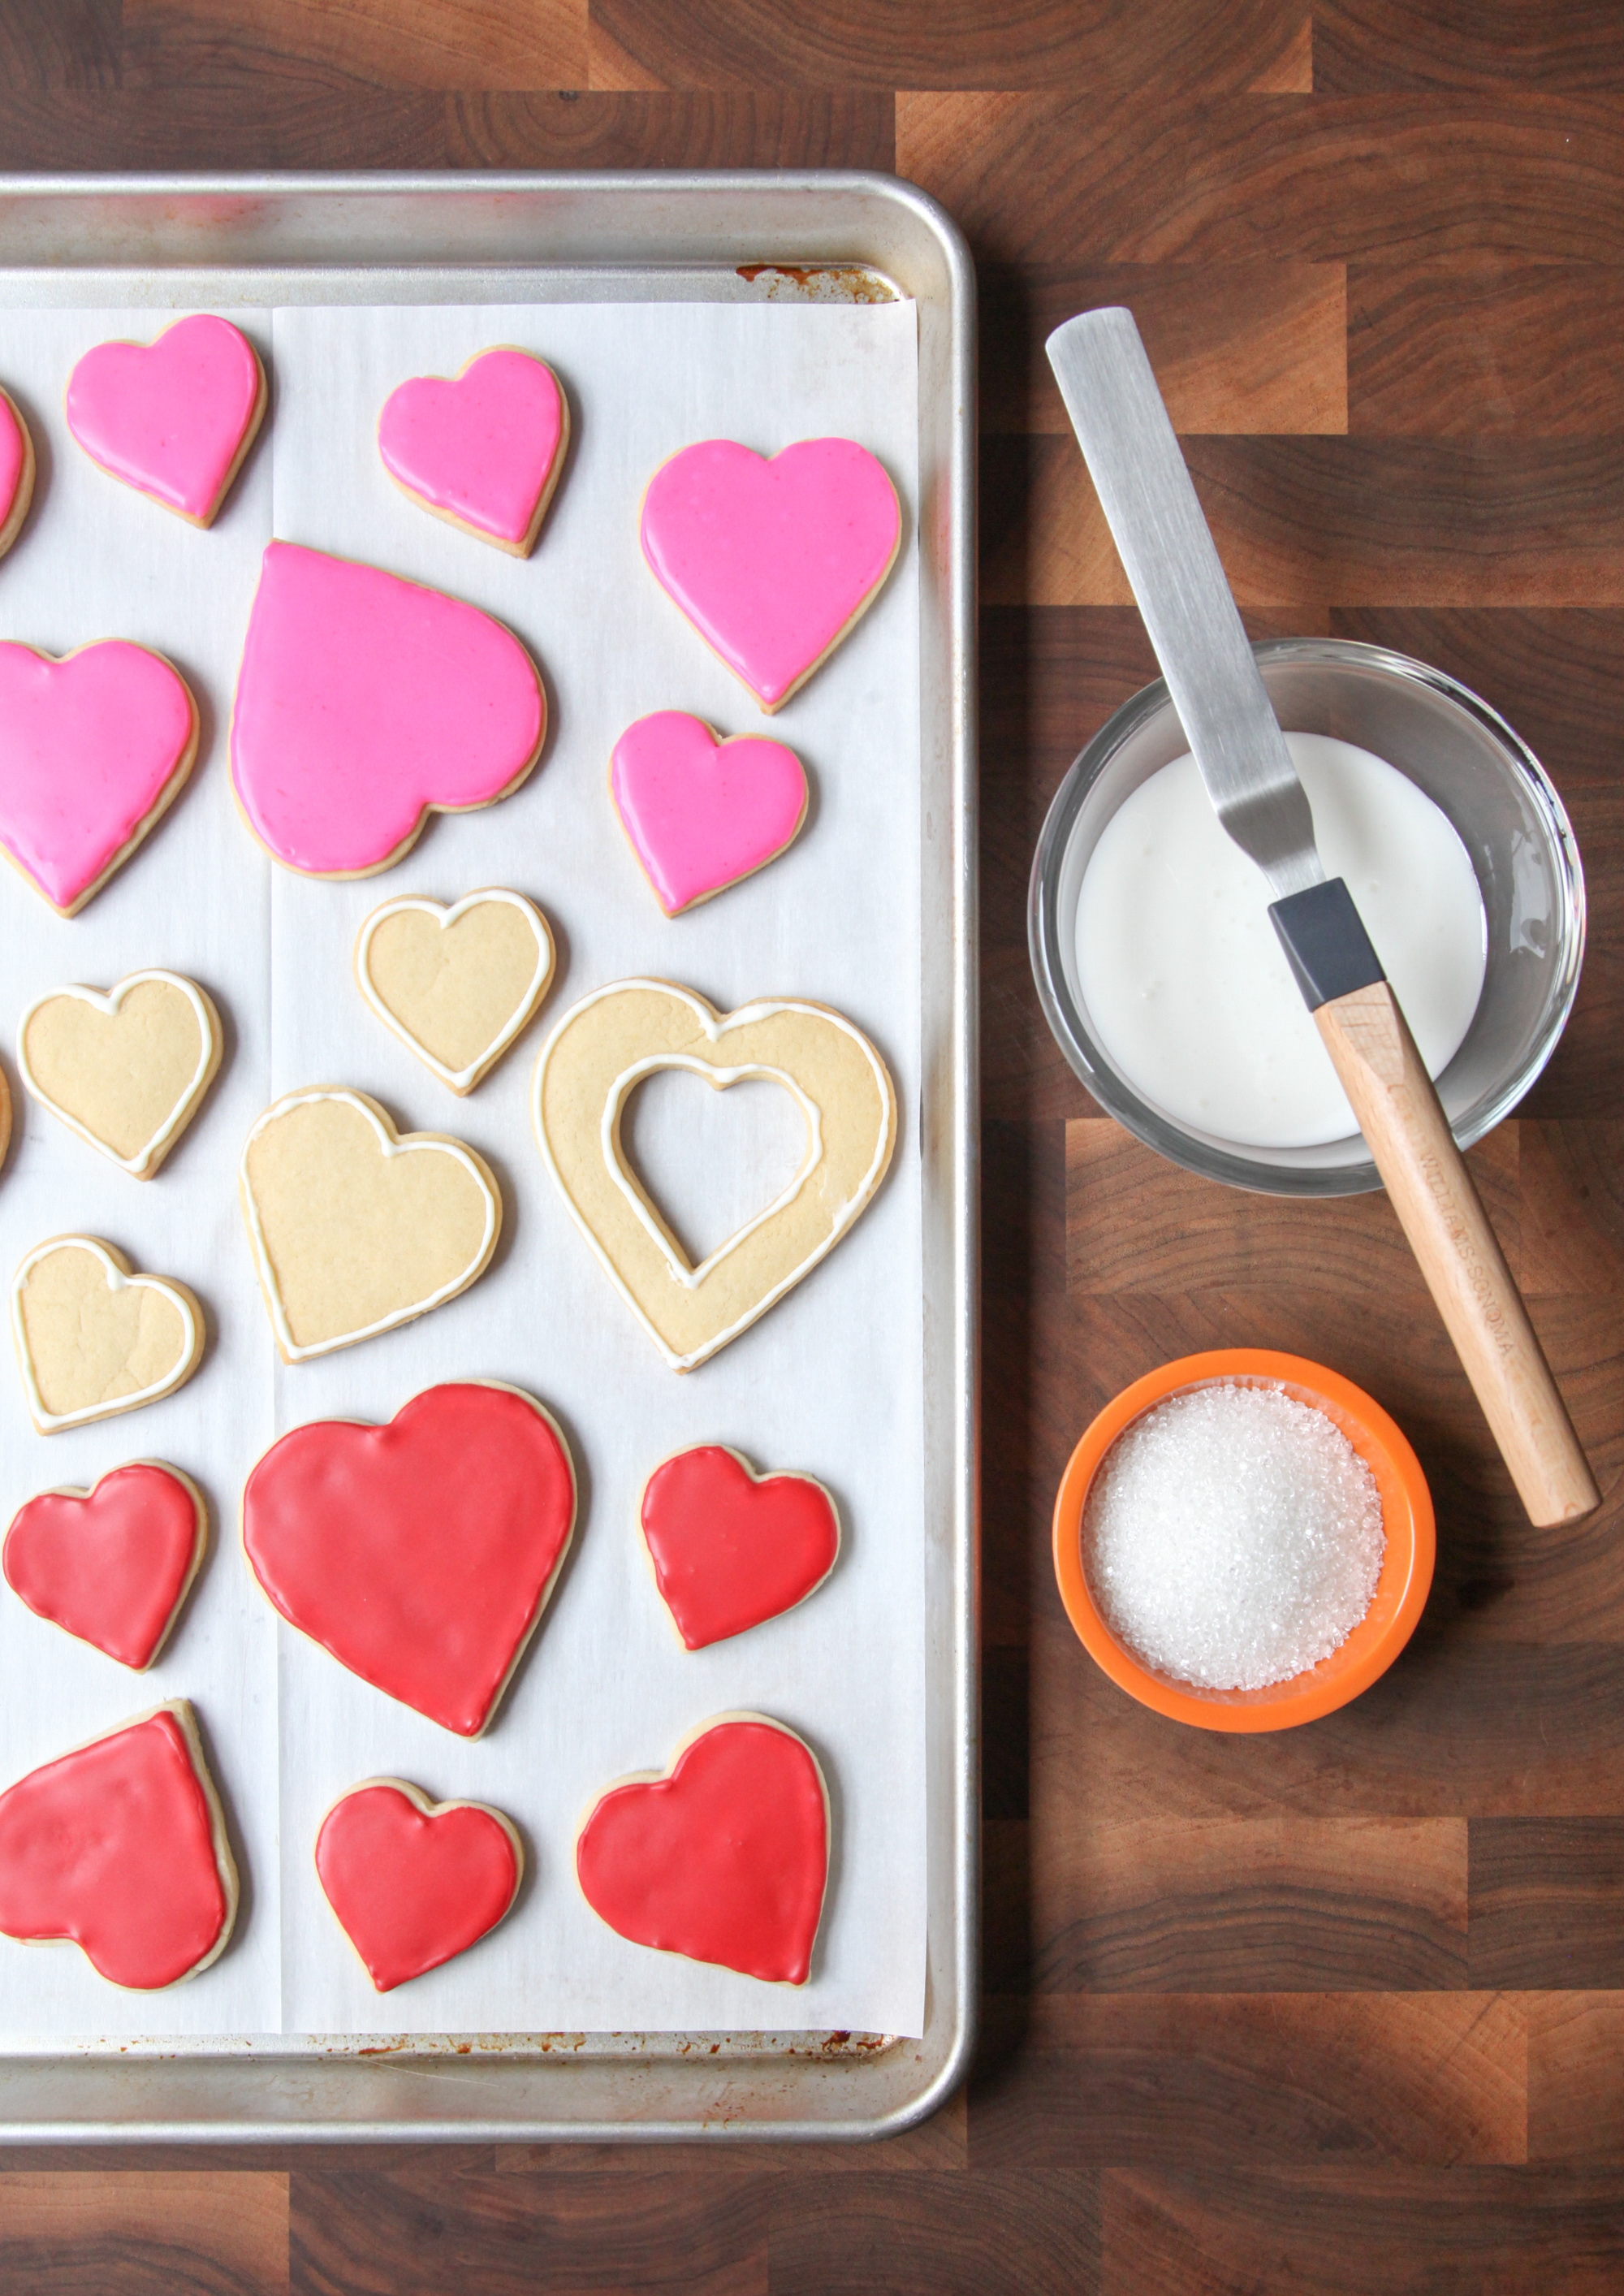 Decorating Valentine's Day sugar cookies